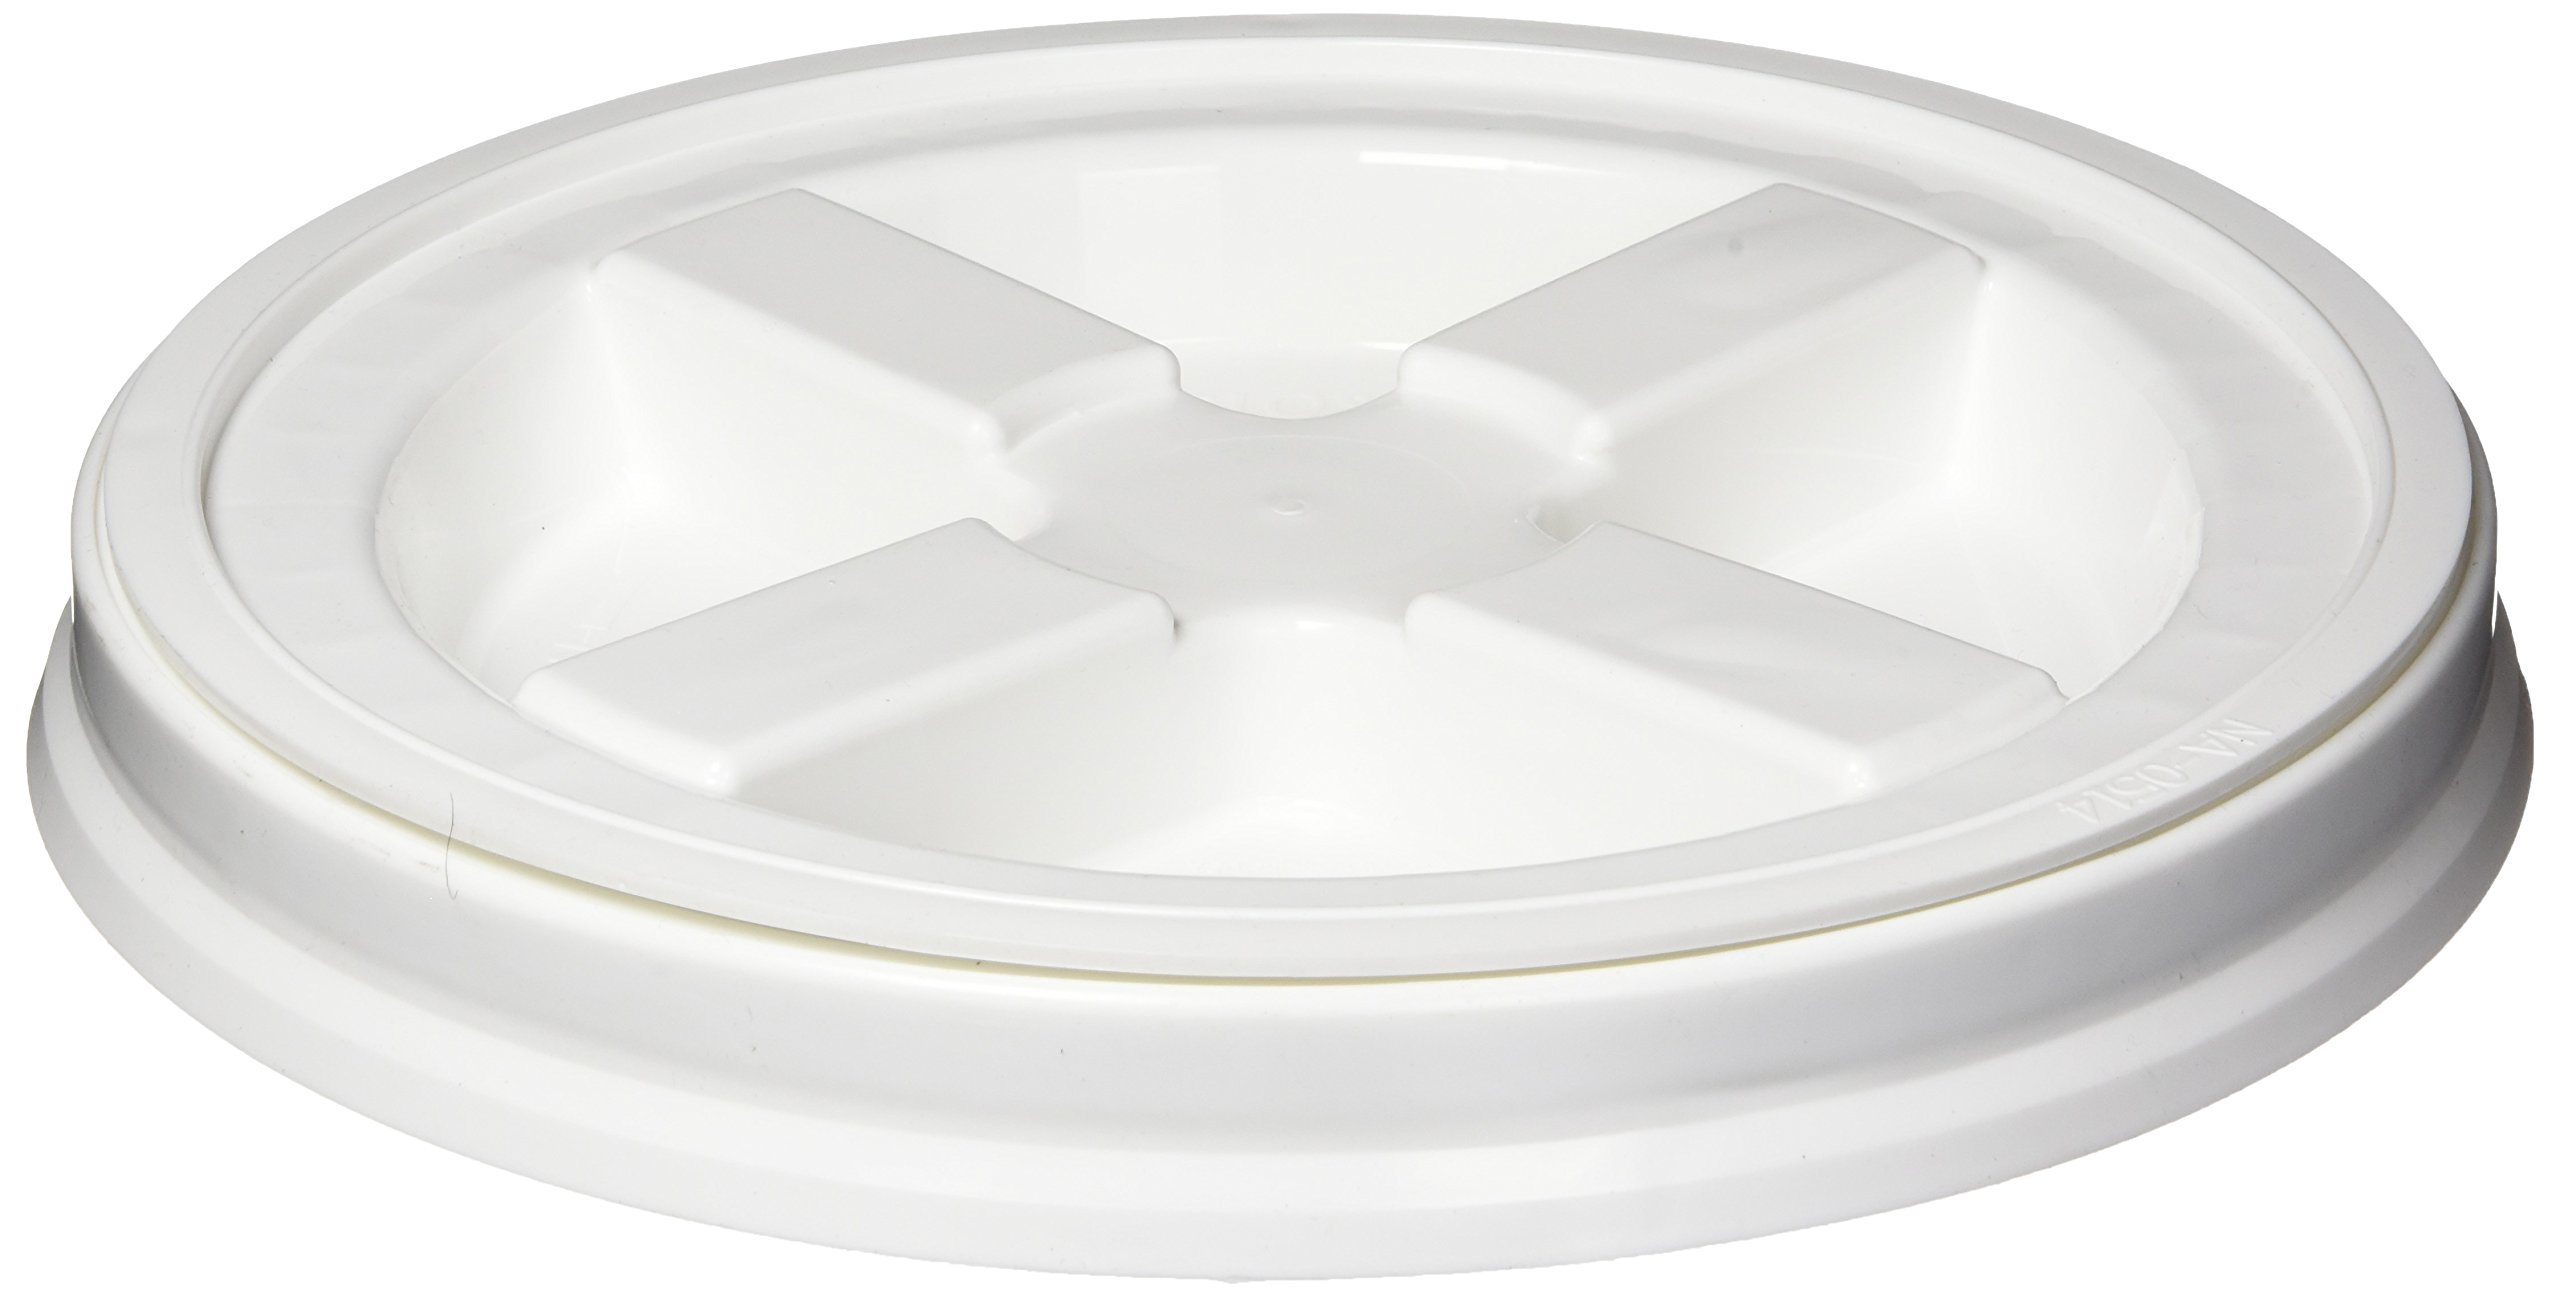 Gamma Vittles Vault Seal Lid fits 3.5 - 7 Gallon bucket, White by Gamma2